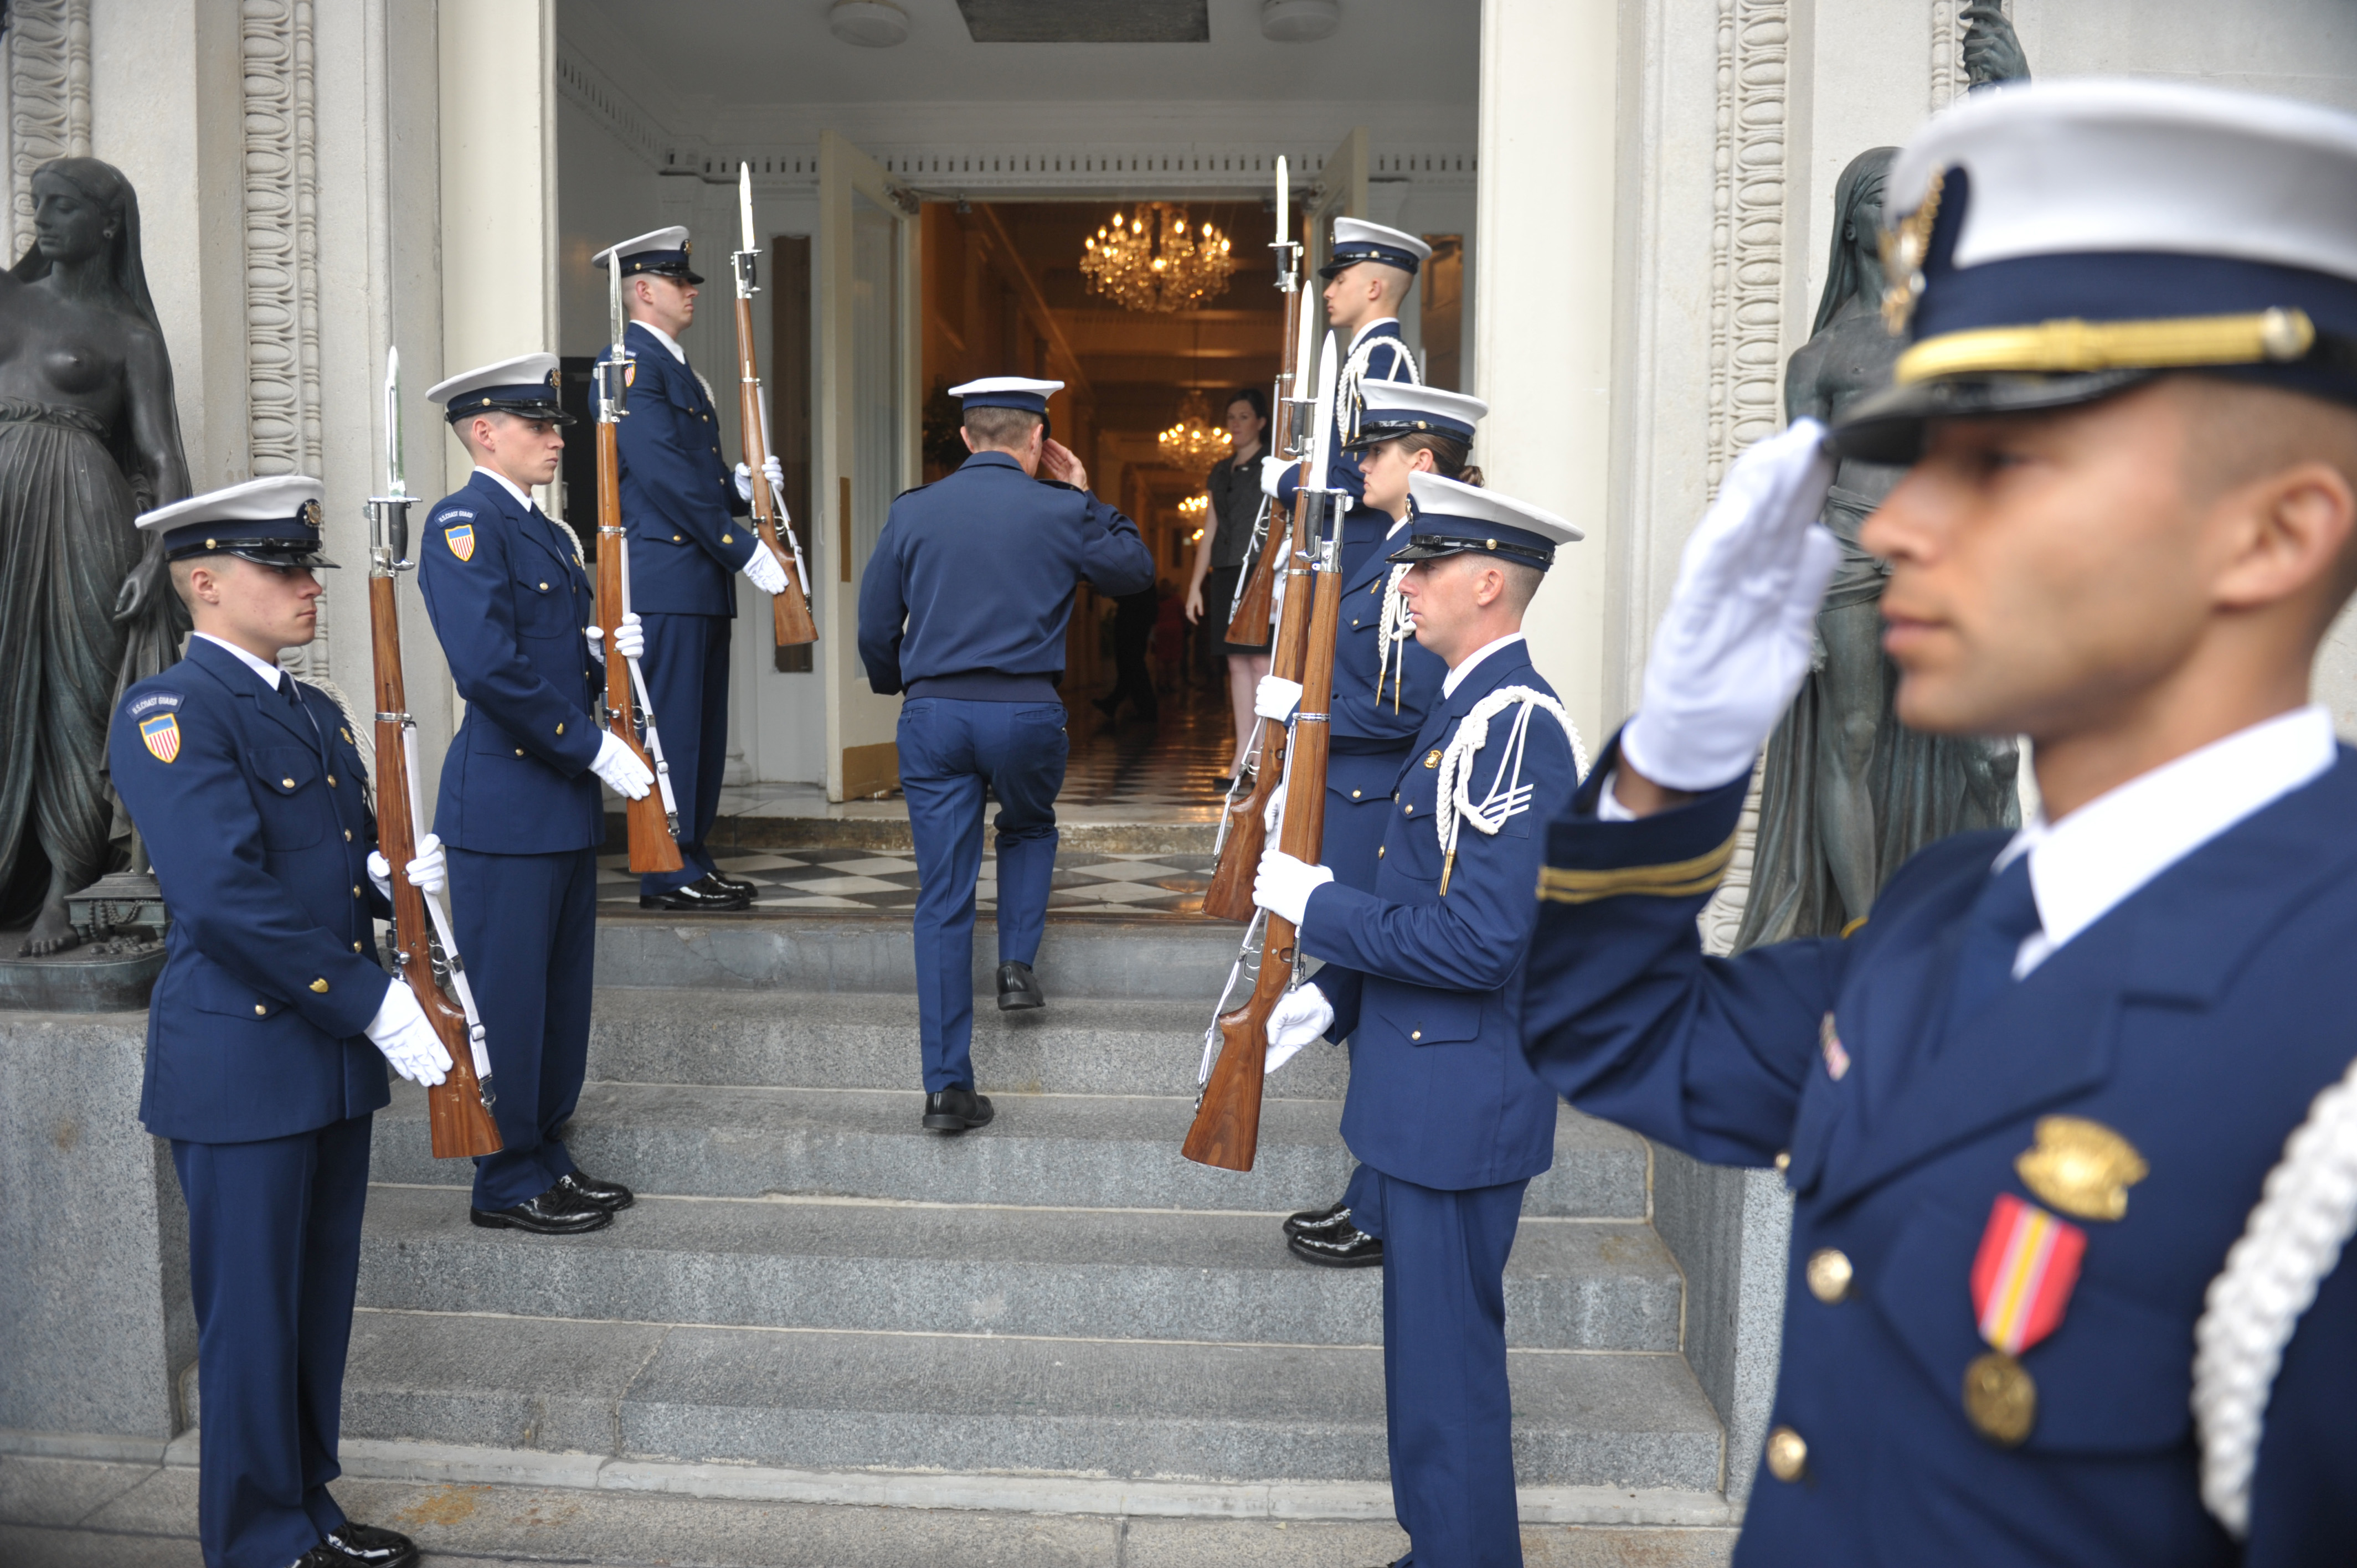 NEW ORLEANS - Capt. Eric Jones, the commanding officer of the Coast Guard Cutter Eagle, walks into Gallier Hall in New Orleans for the mayoral welcome, April 18, 2012. The mayoral welcome is to welcome the commanding officers of the cutters that pulled into the port of New Orleans and to kick off the NOLA Navy Week's events. U.S. Coast Guard photo by Petty Officer 1st Class Brandyn Hill.